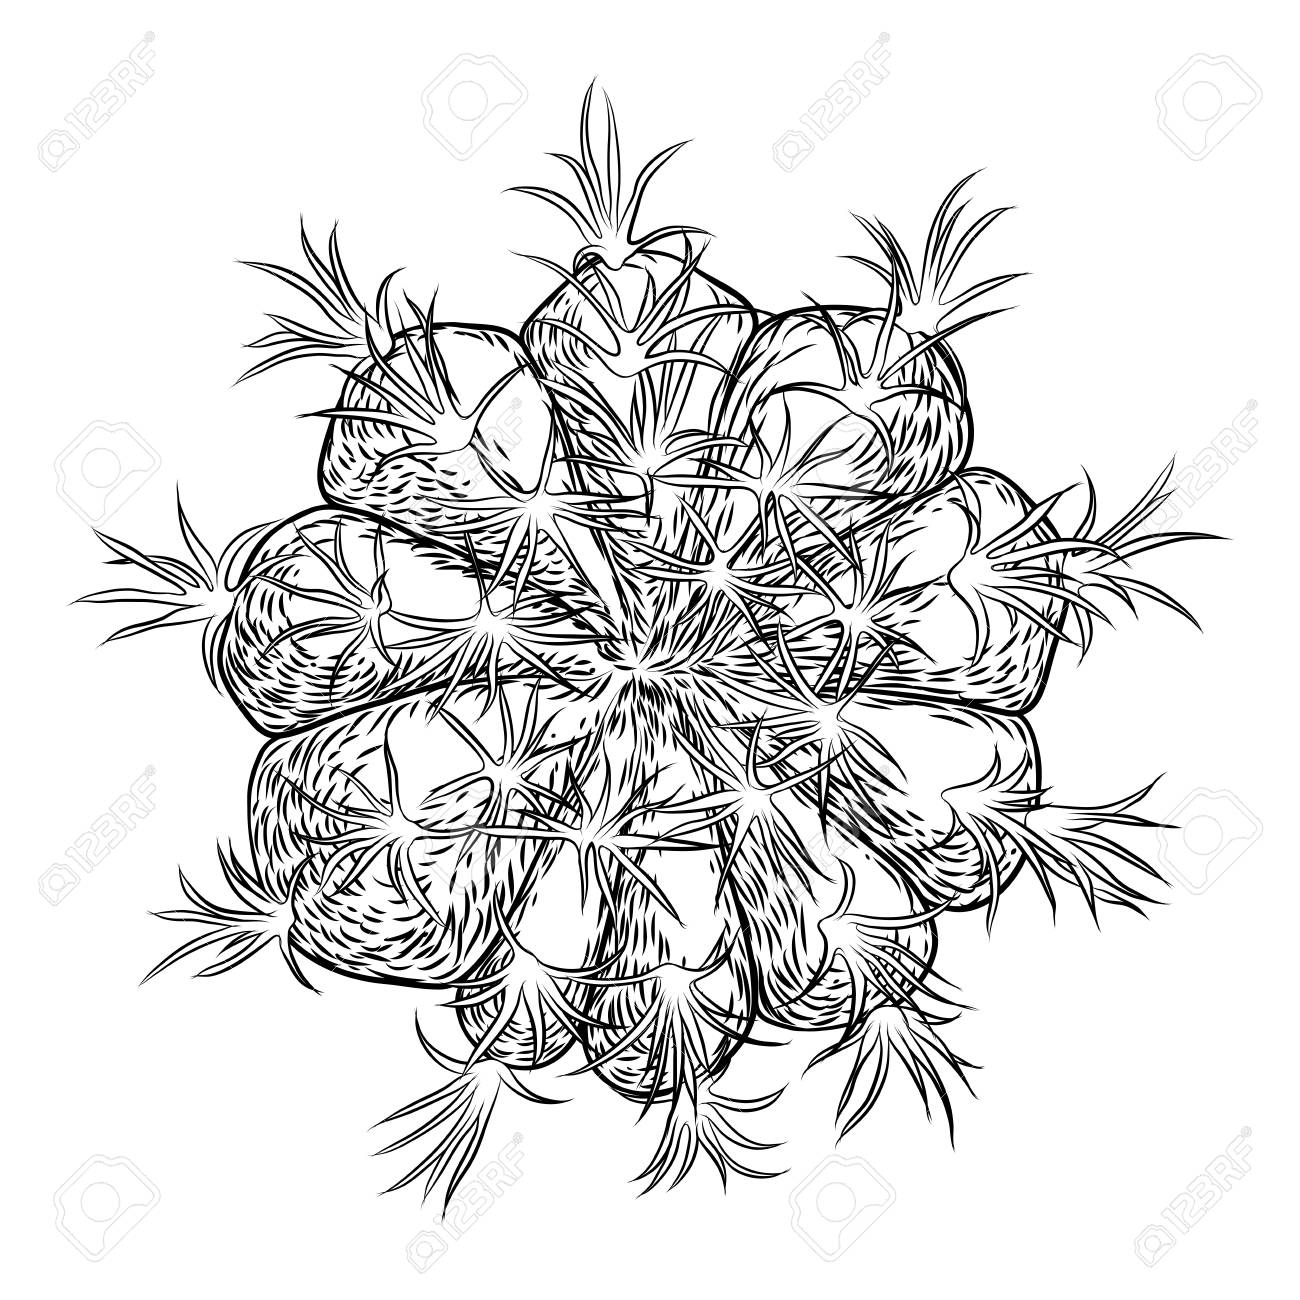 Cute Cactus Illustration Handmade Hand Drawn Outline Cacti And Royalty Free Cliparts Vectors And Stock Illustration Image 98311851